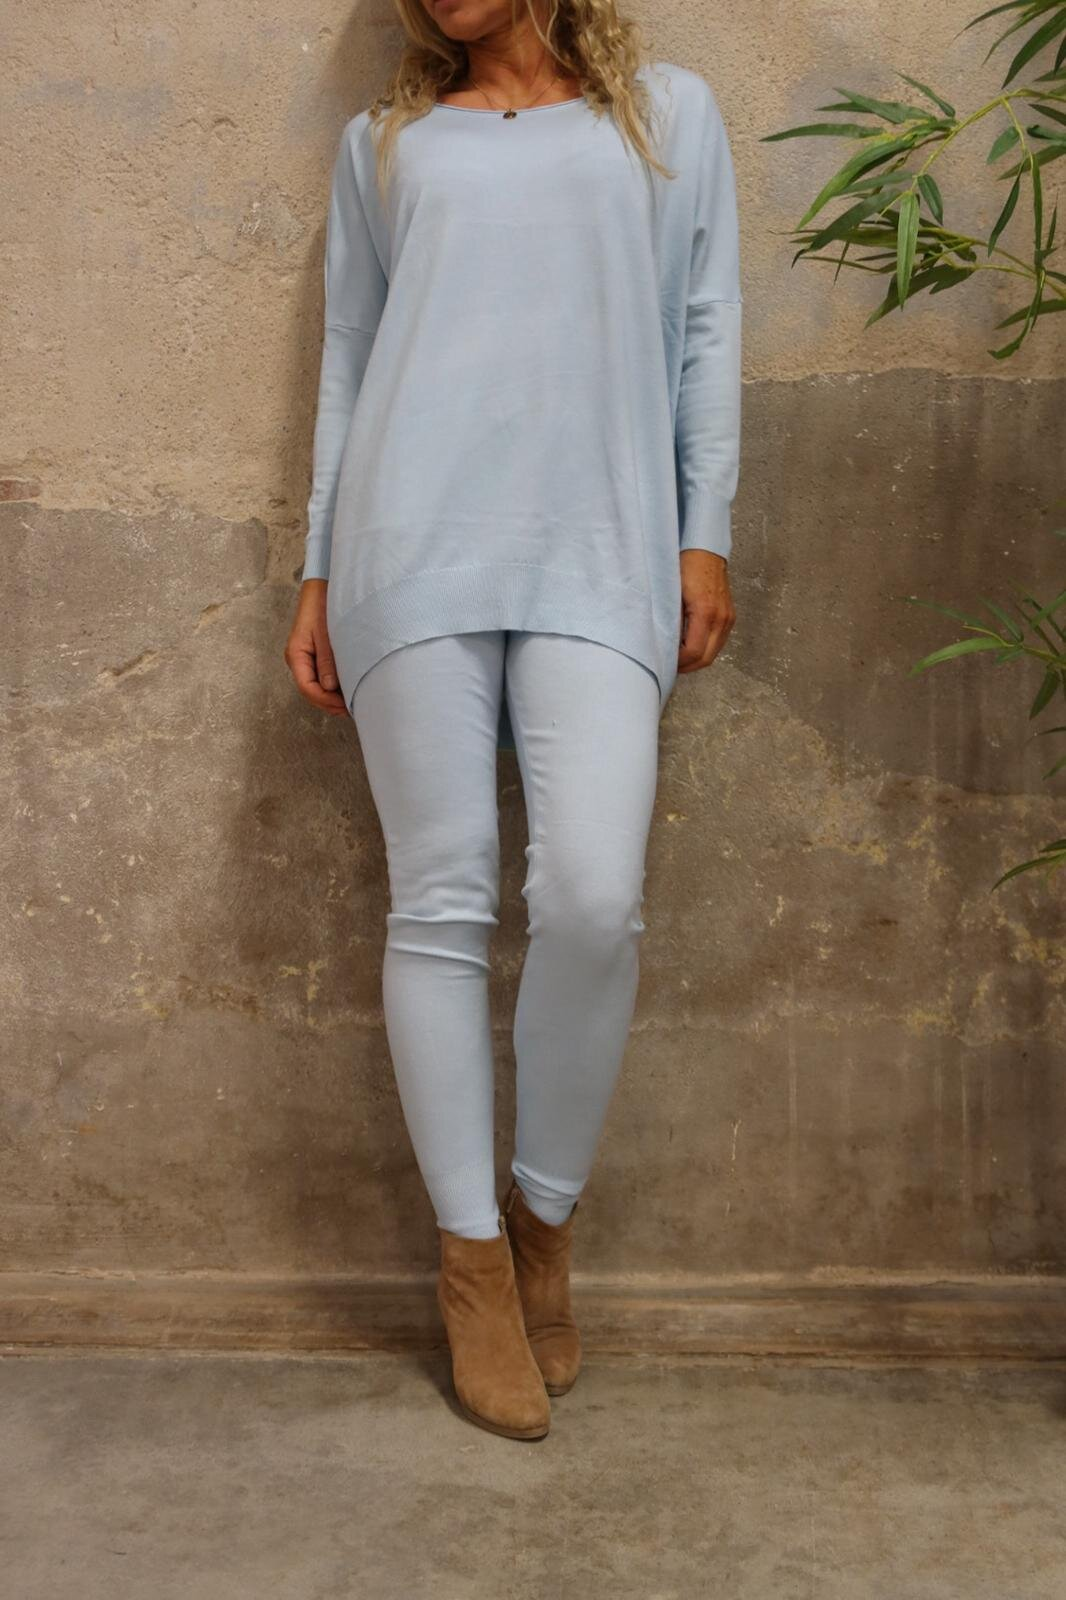 Brittany - Knitted set - Sweater and Trousers -Light blue